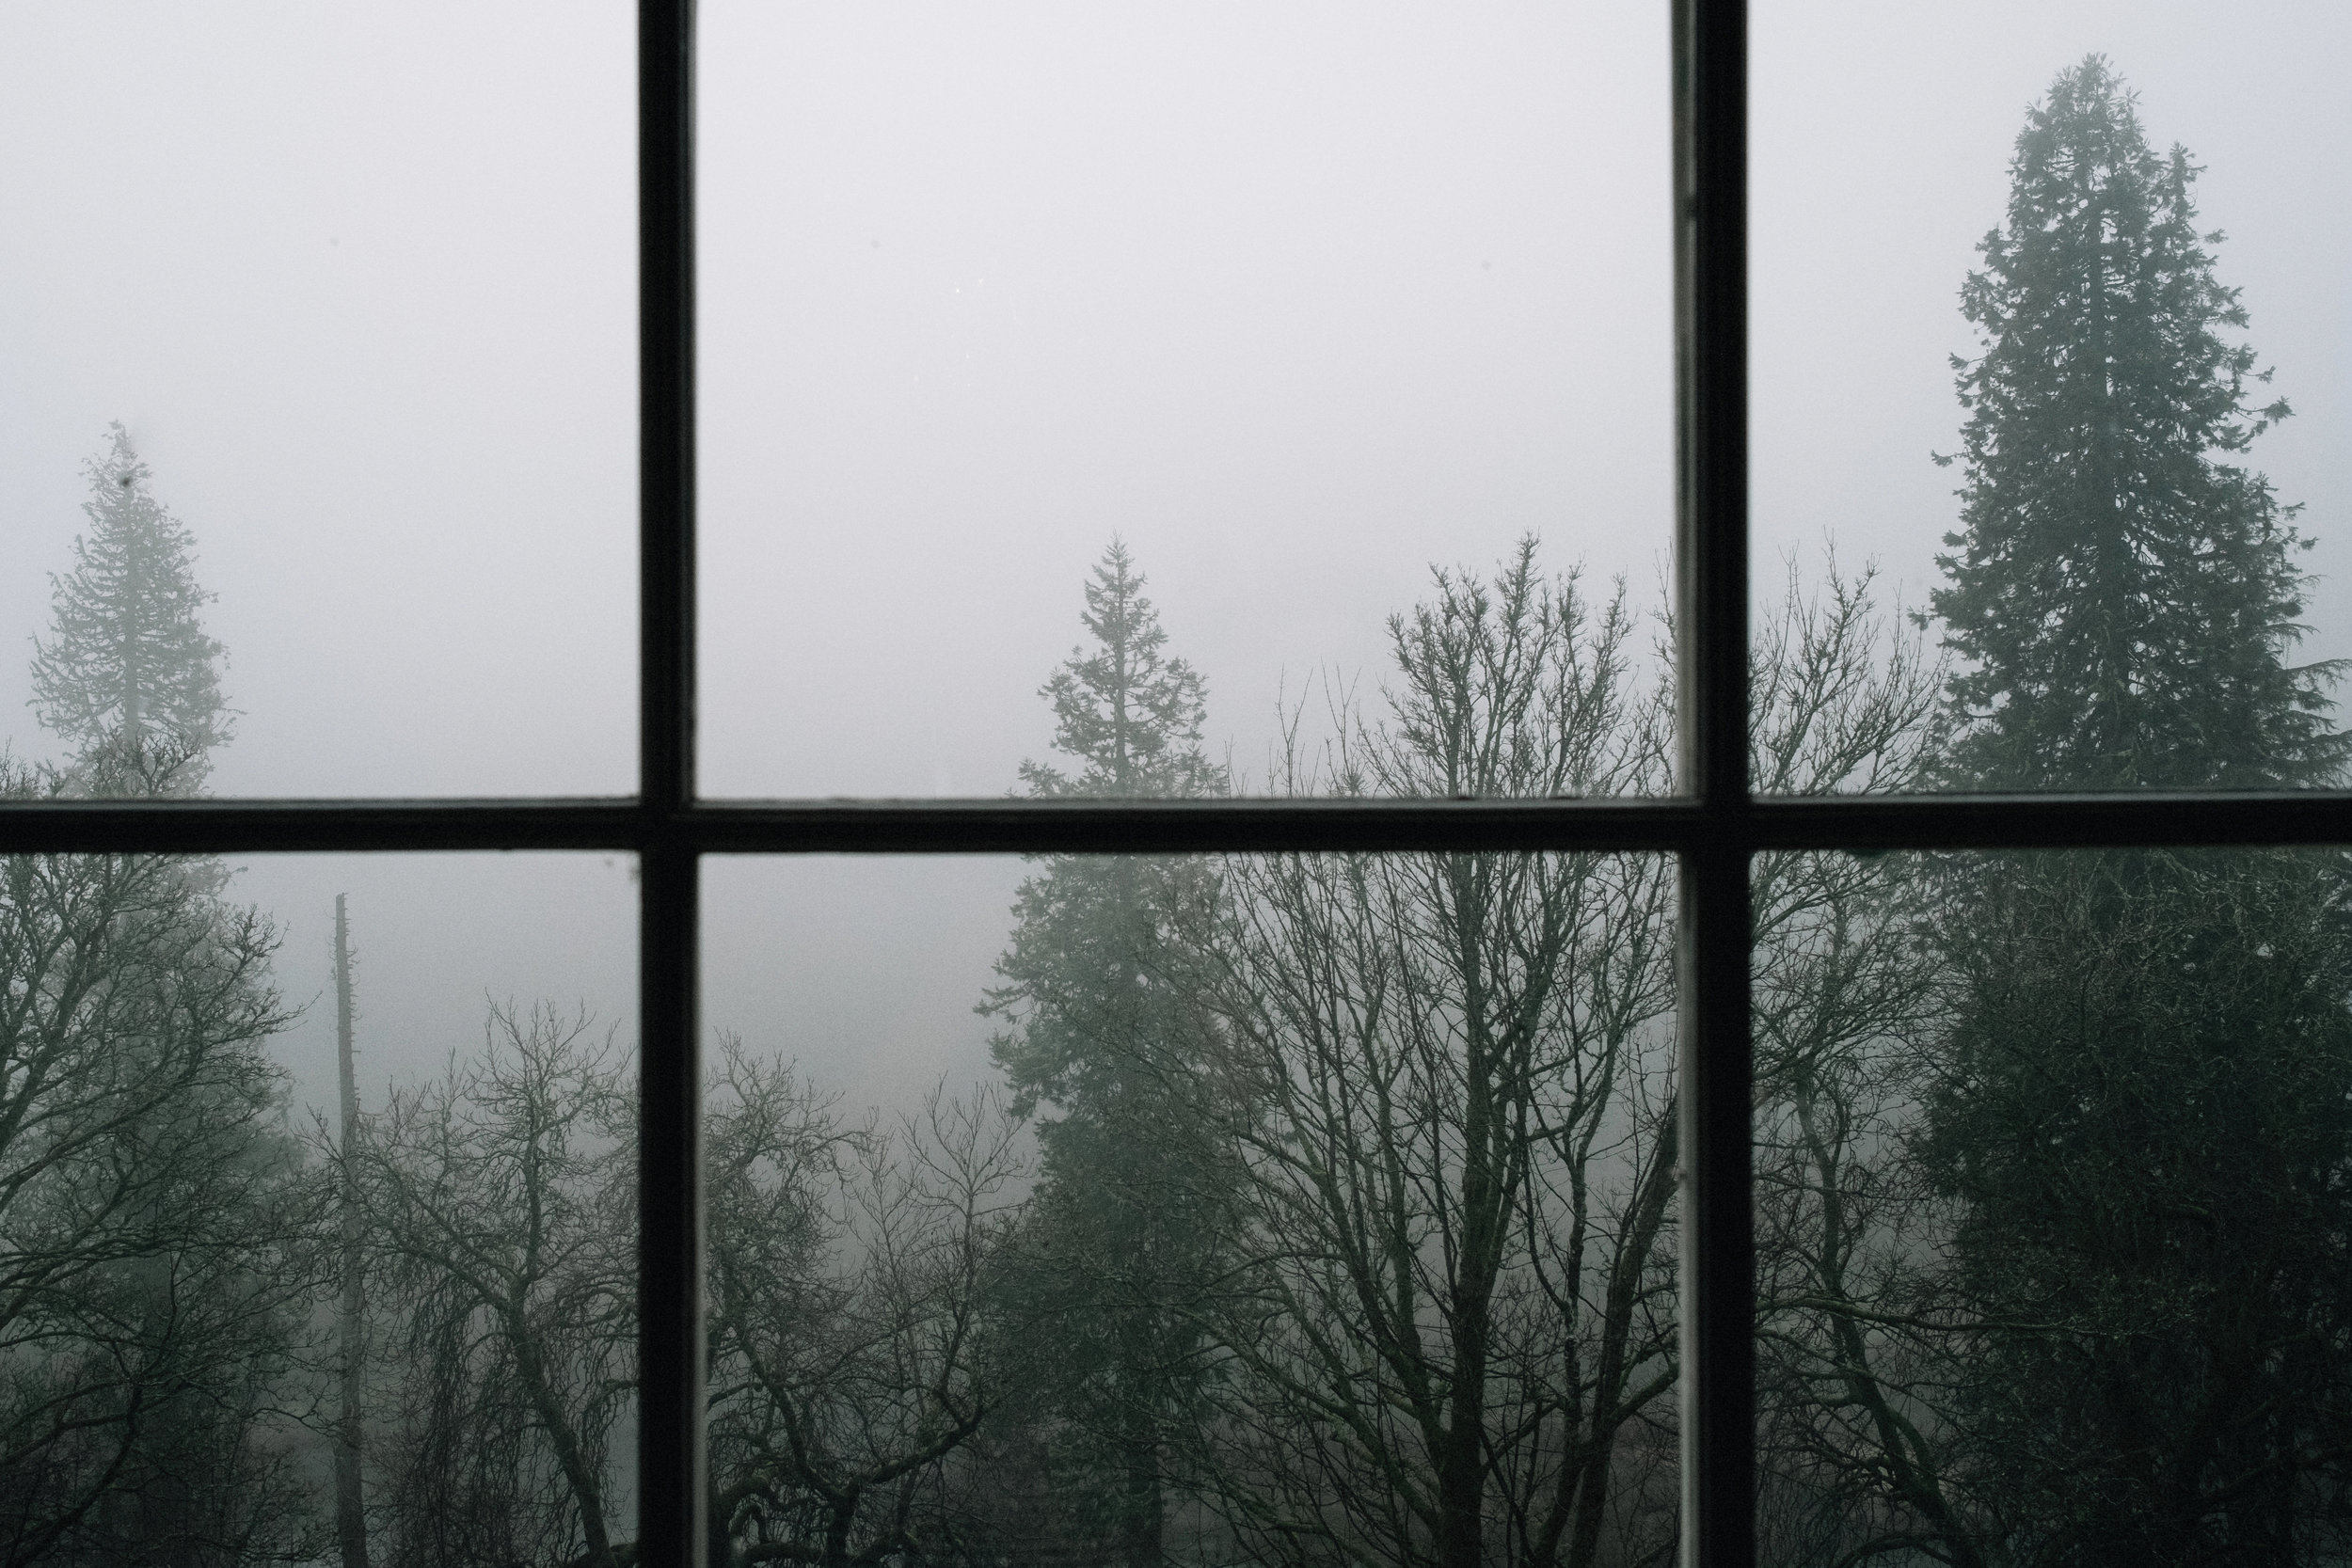 Foggy surrounded trees